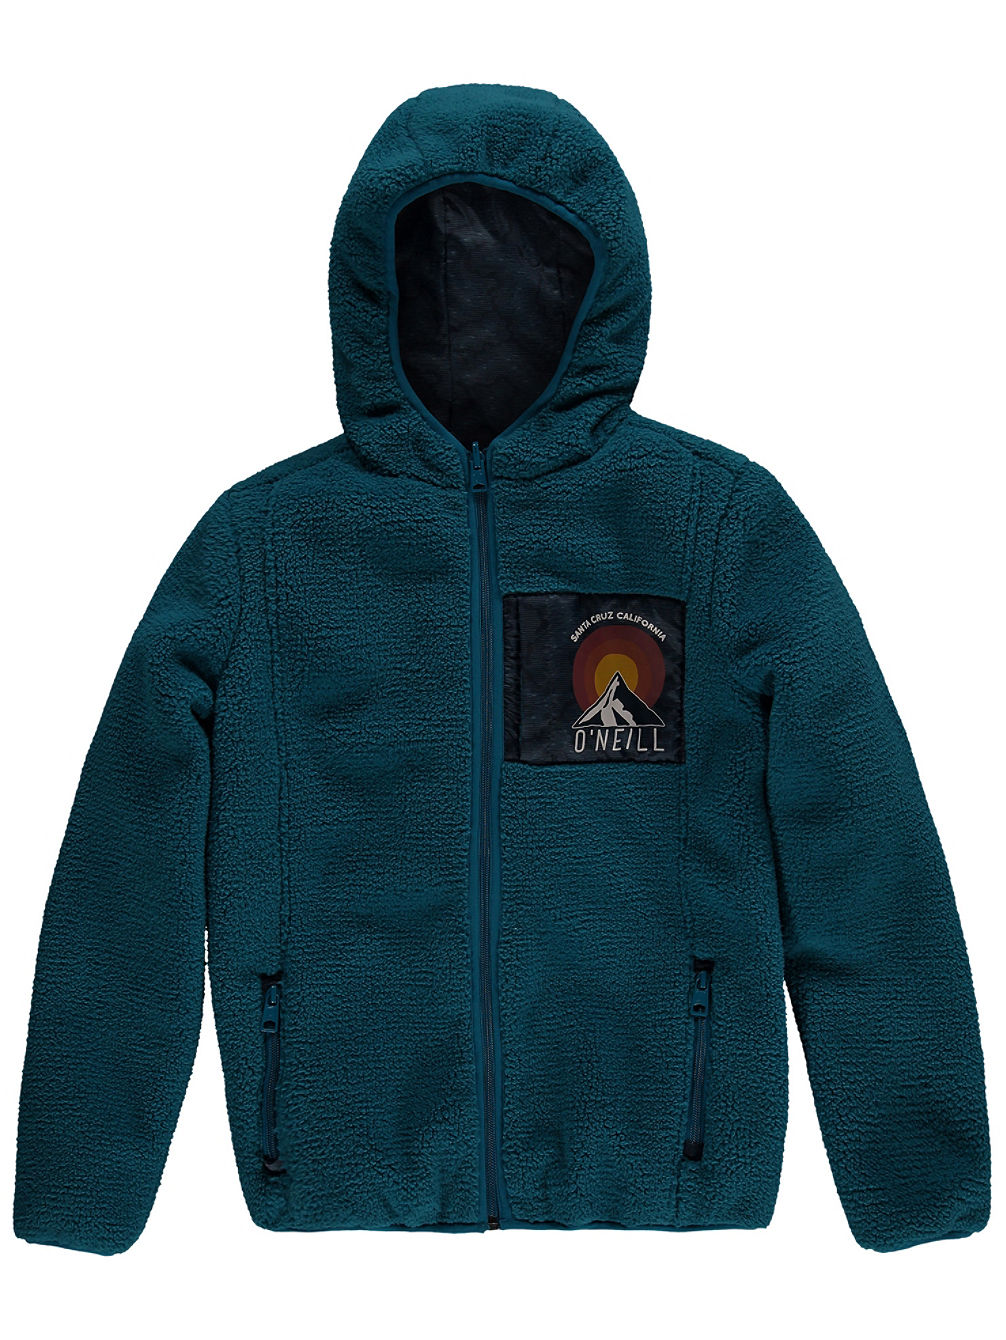 Reversible Sherpa Jacket Boys